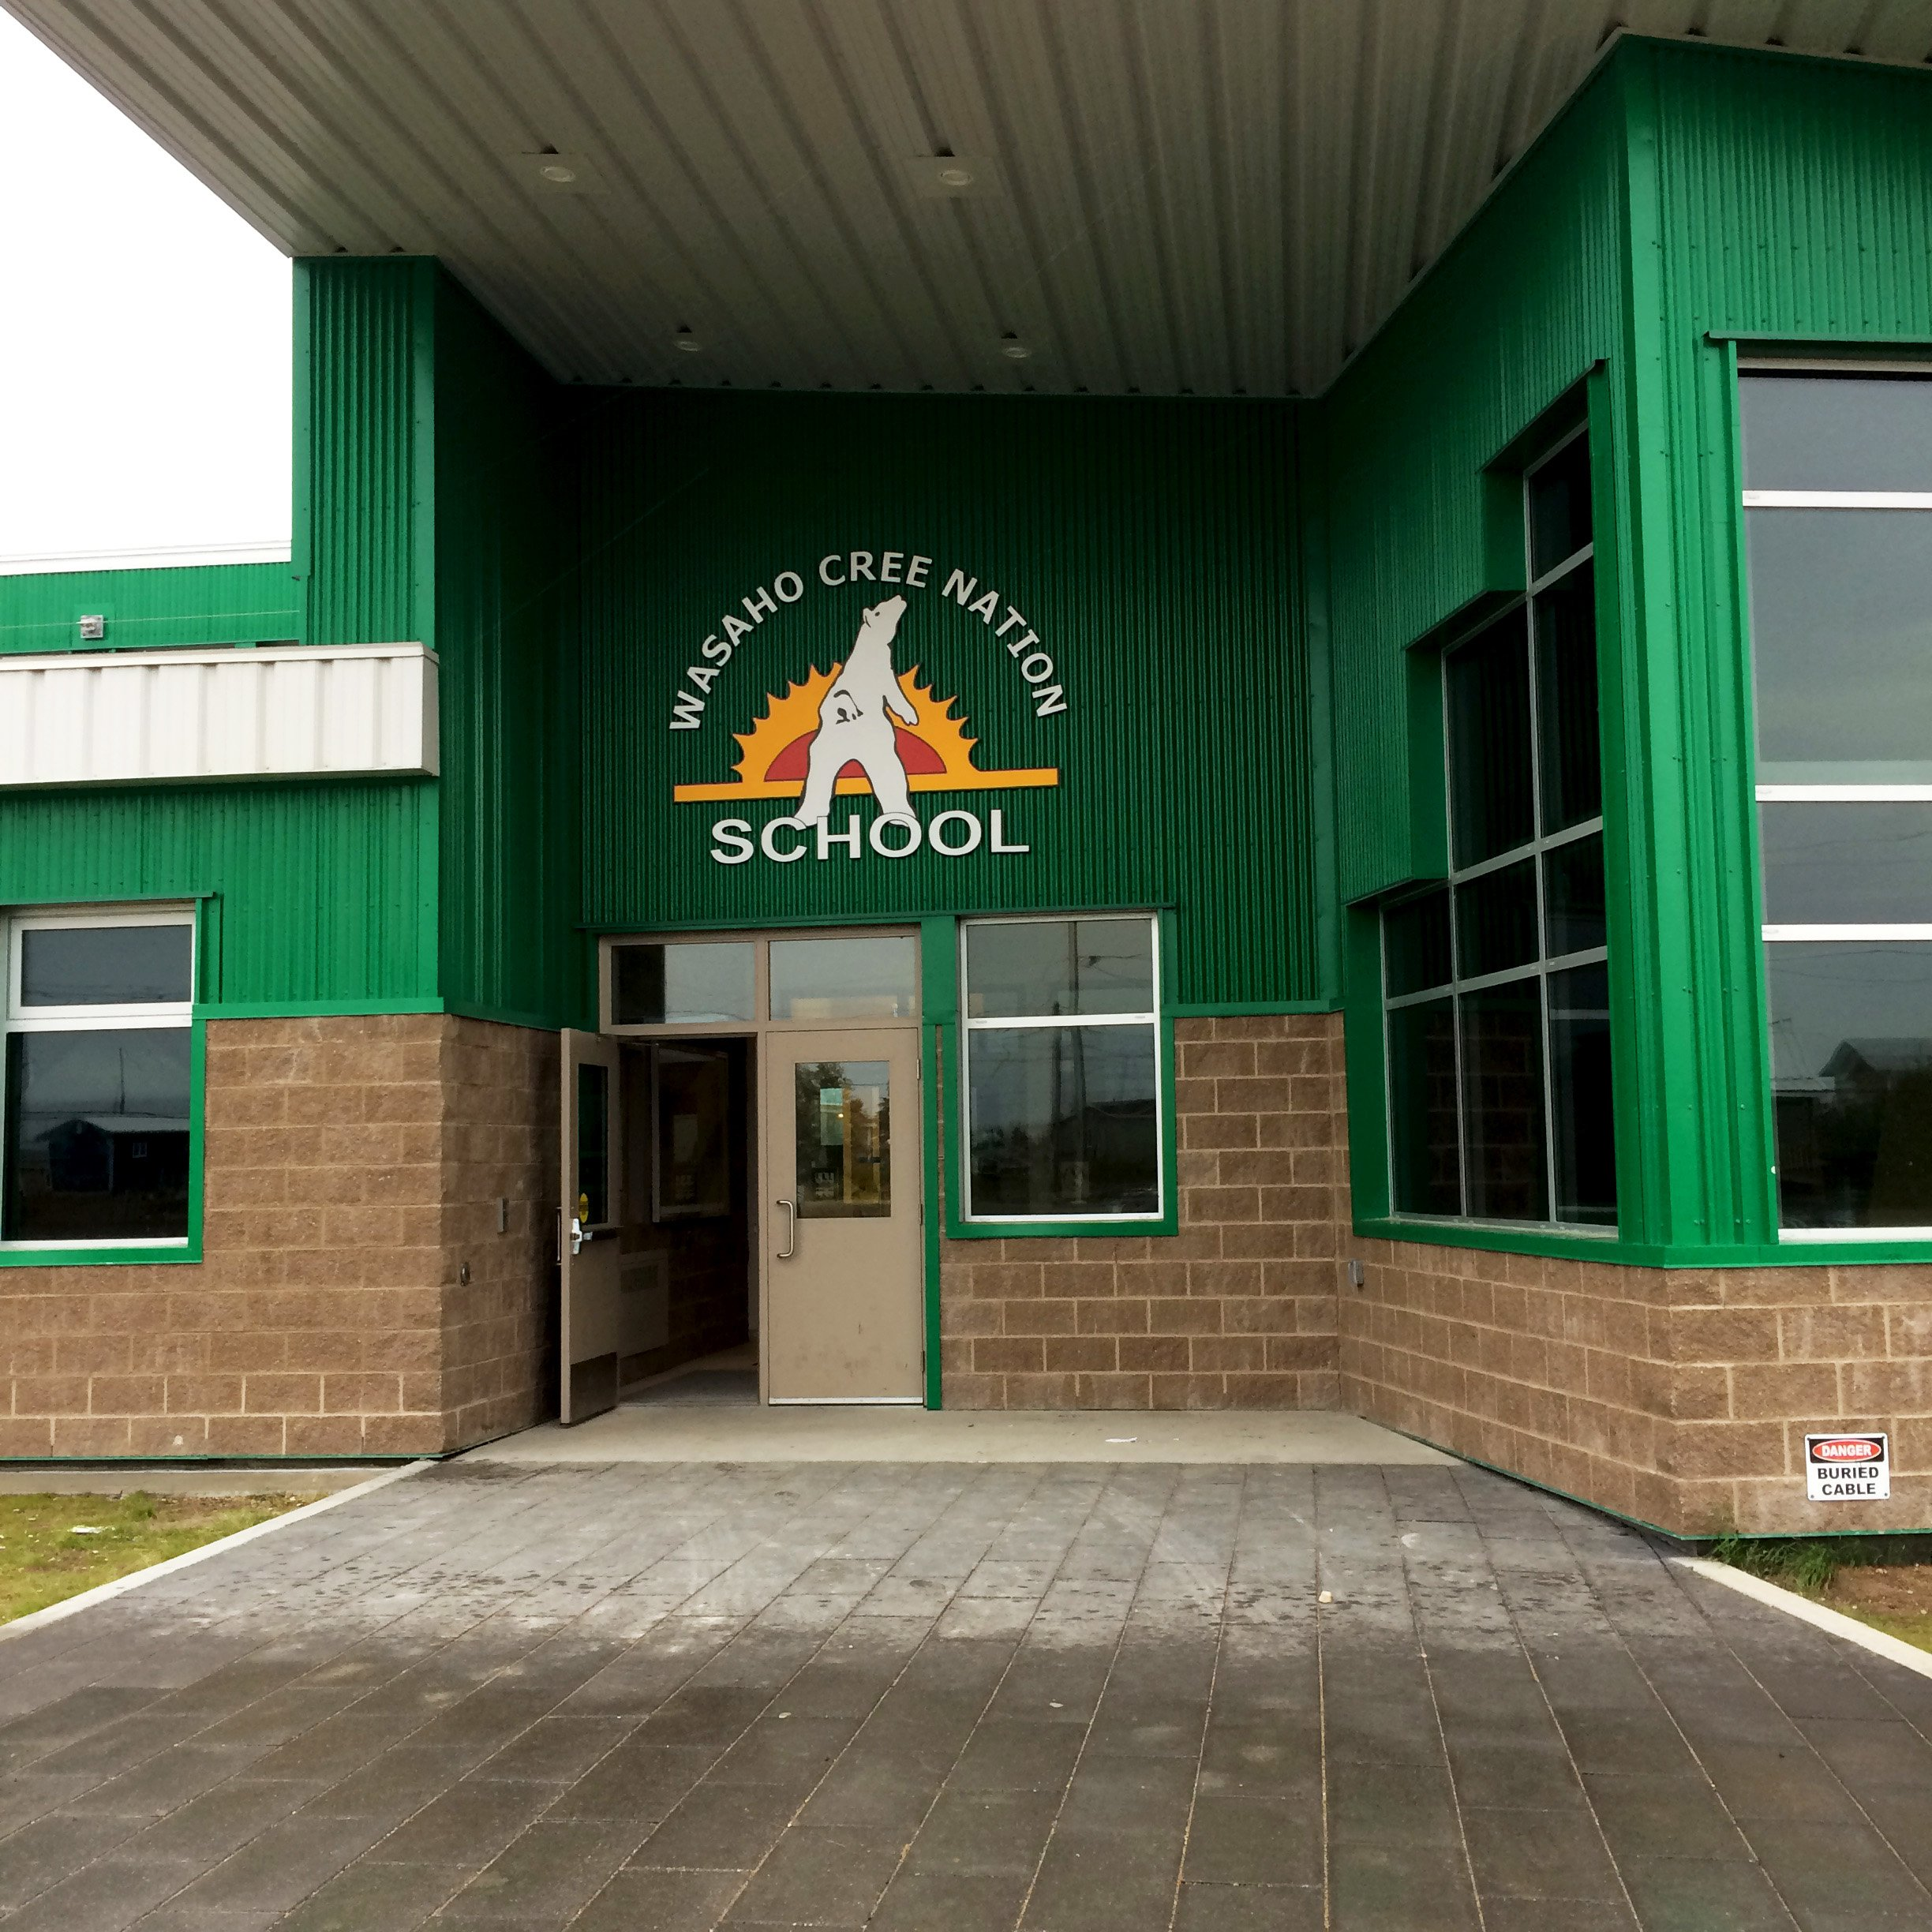 Entrance to Wasaho Cree Nation school